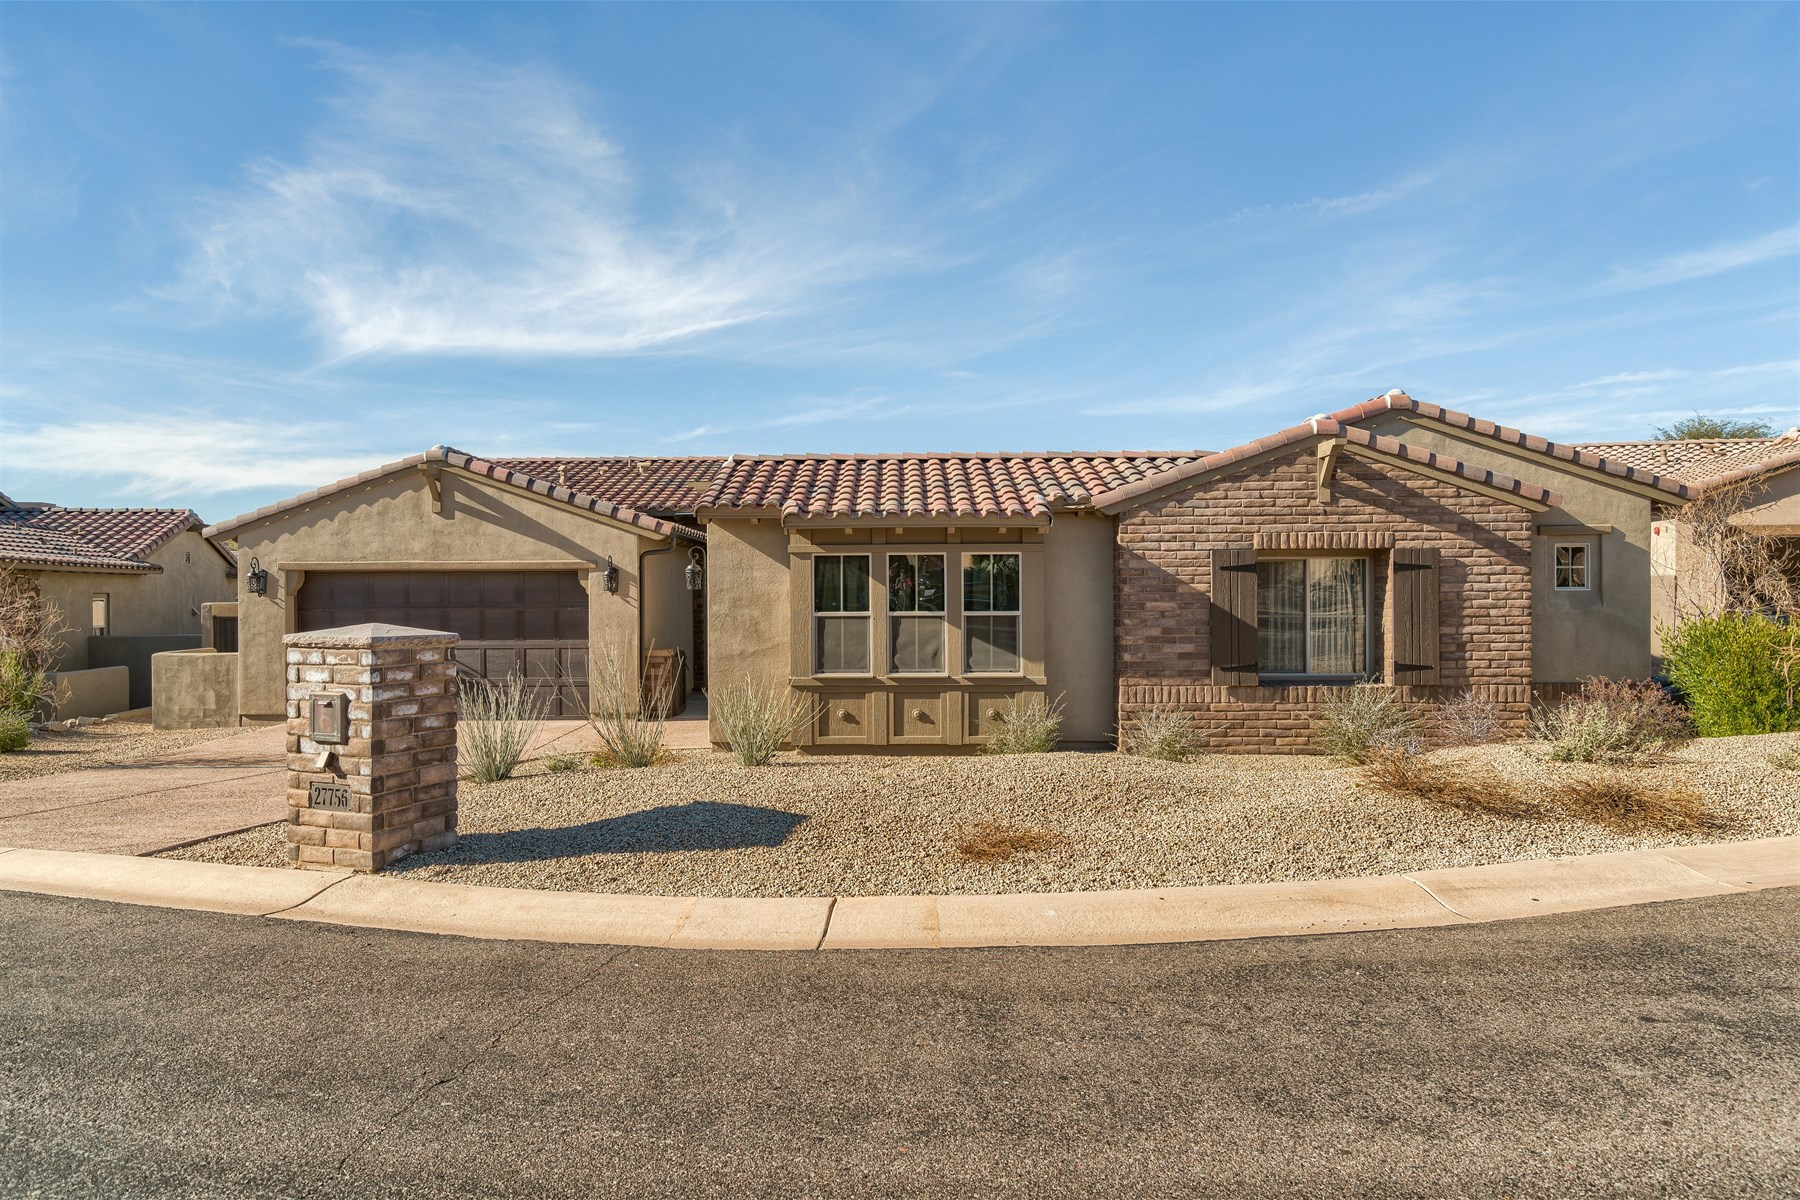 Maison unifamiliale pour l Vente à Brand new home in the gated community of Quisana at Troon North 27756 N 110th Pl Scottsdale, Arizona 85262 États-Unis